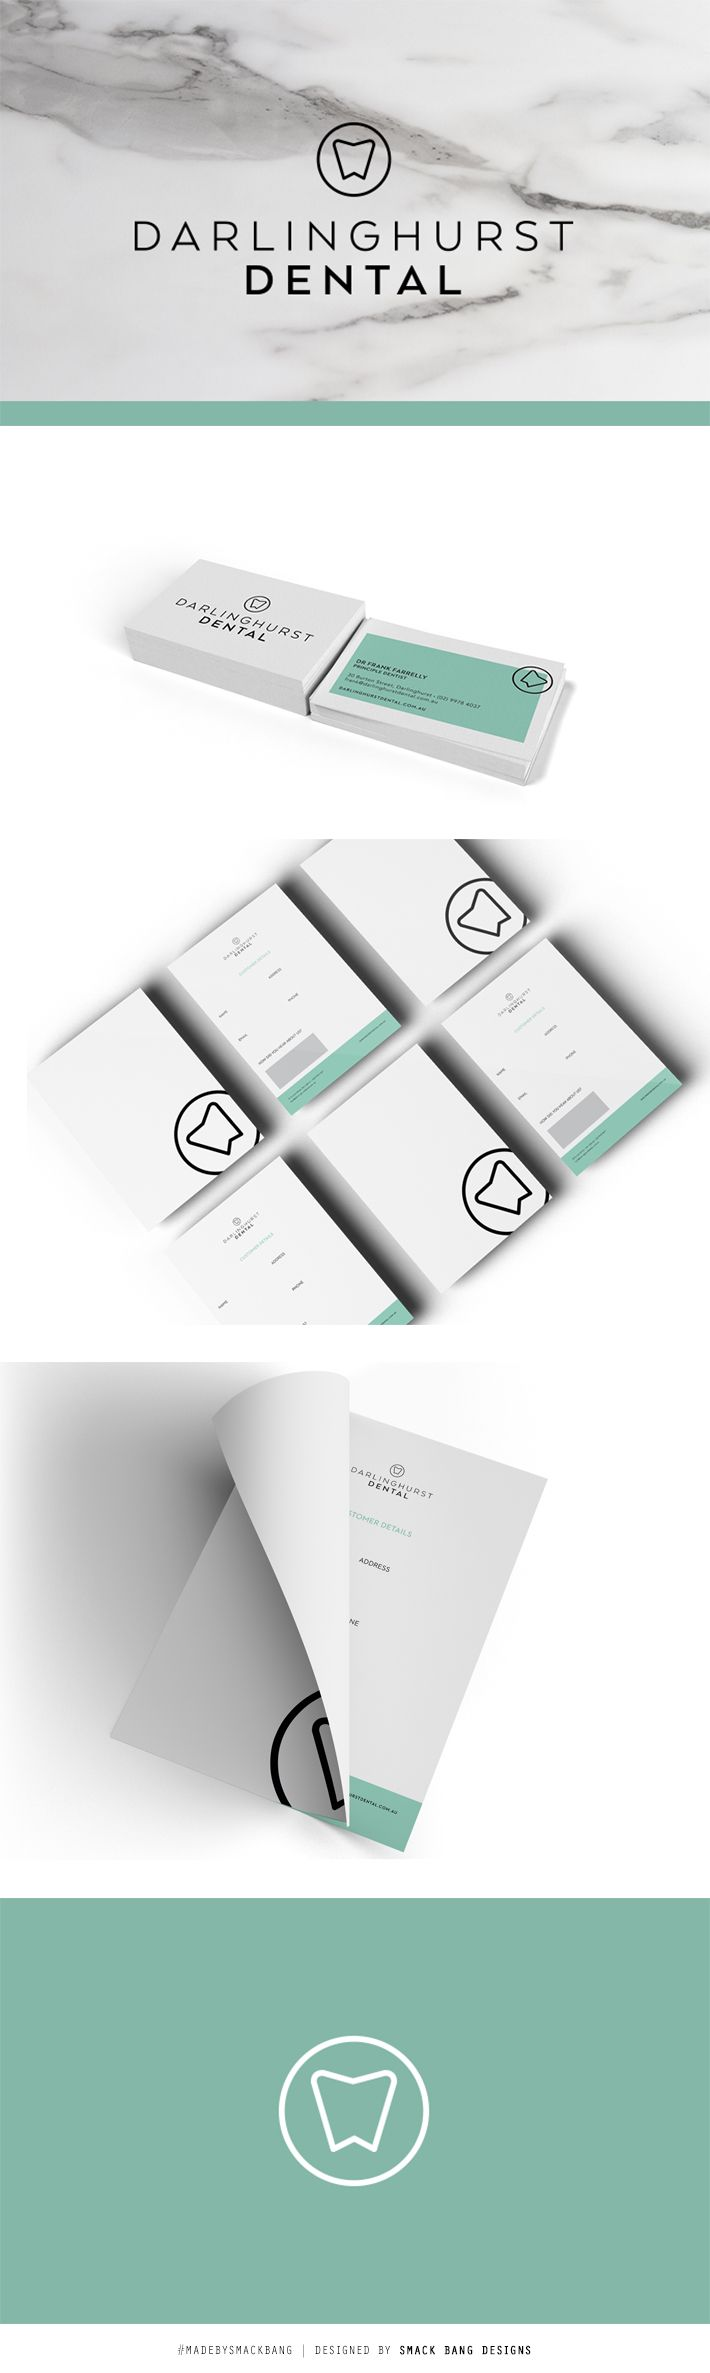 Darlinghurst Dental branding by Smack Bang Designs #Branding #BusinessCards…                                                                                                                                                     もっと見る